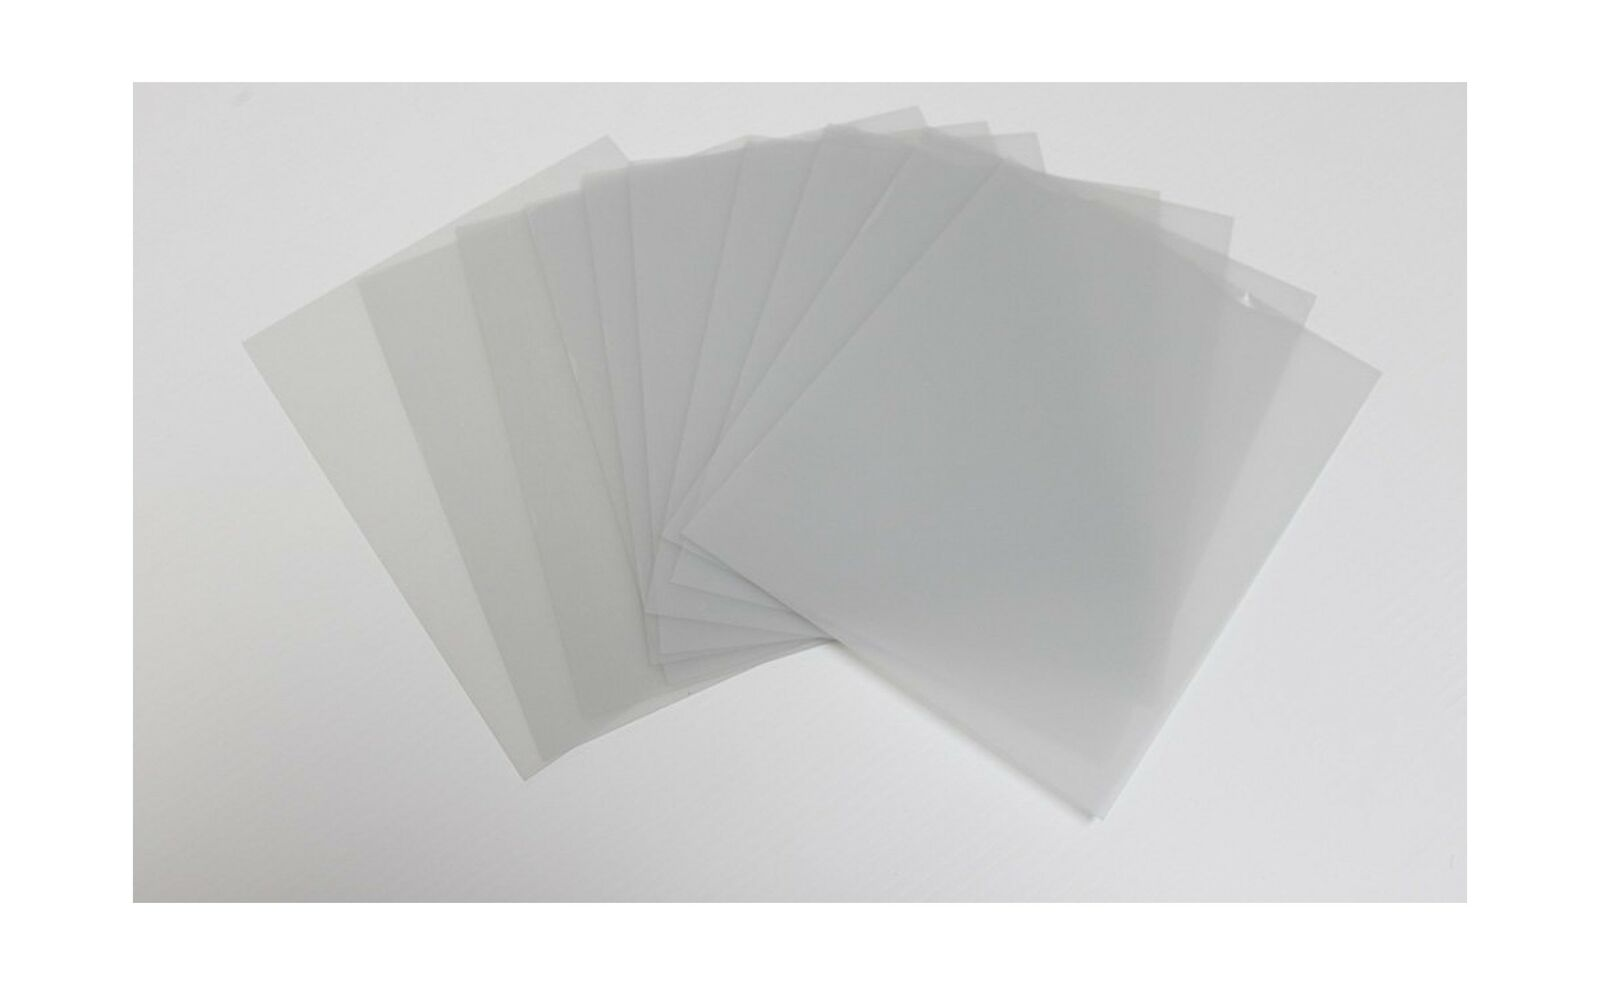 Imperial Acrylics 10 Pack 8x10 Inch Transparent Clear Acrylic Sheets//Plexiglass Panels 0.04 Inch Thickness; Great for Picture Frame Glass Replacement Crafting and DIY Home Projects Event//Table Signs